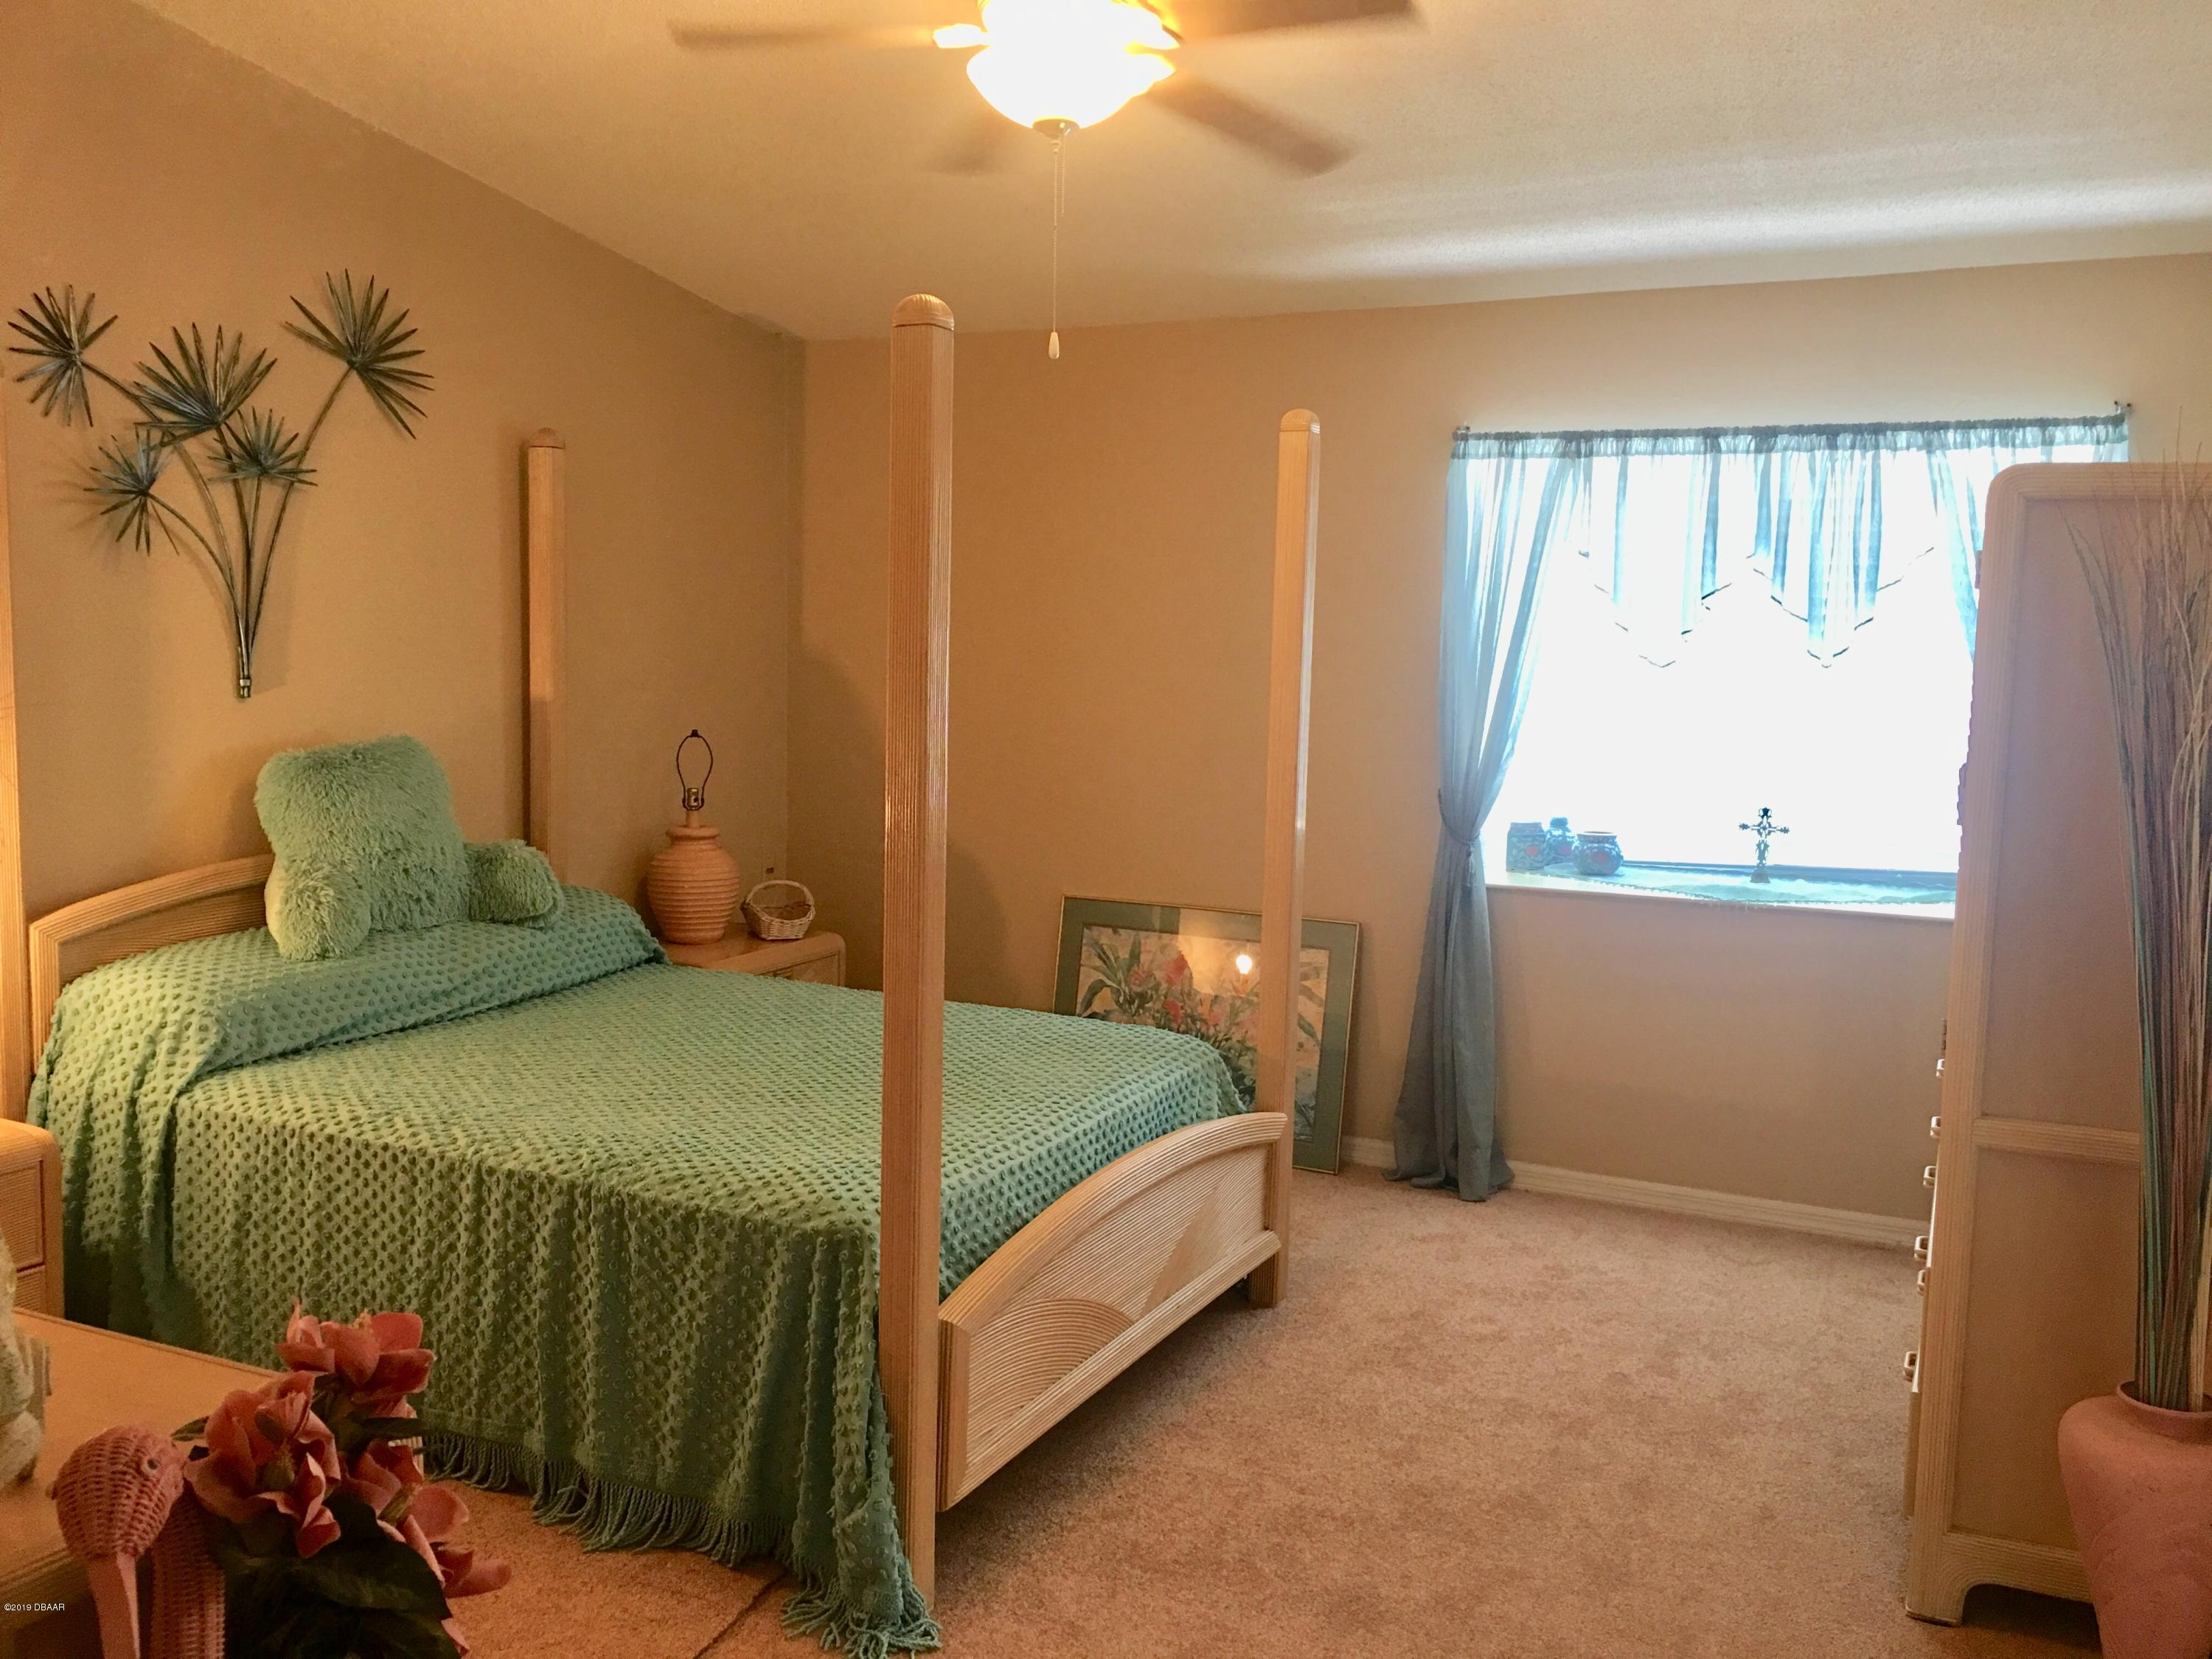 172 Cedarwood Village Daytona Beach - 7